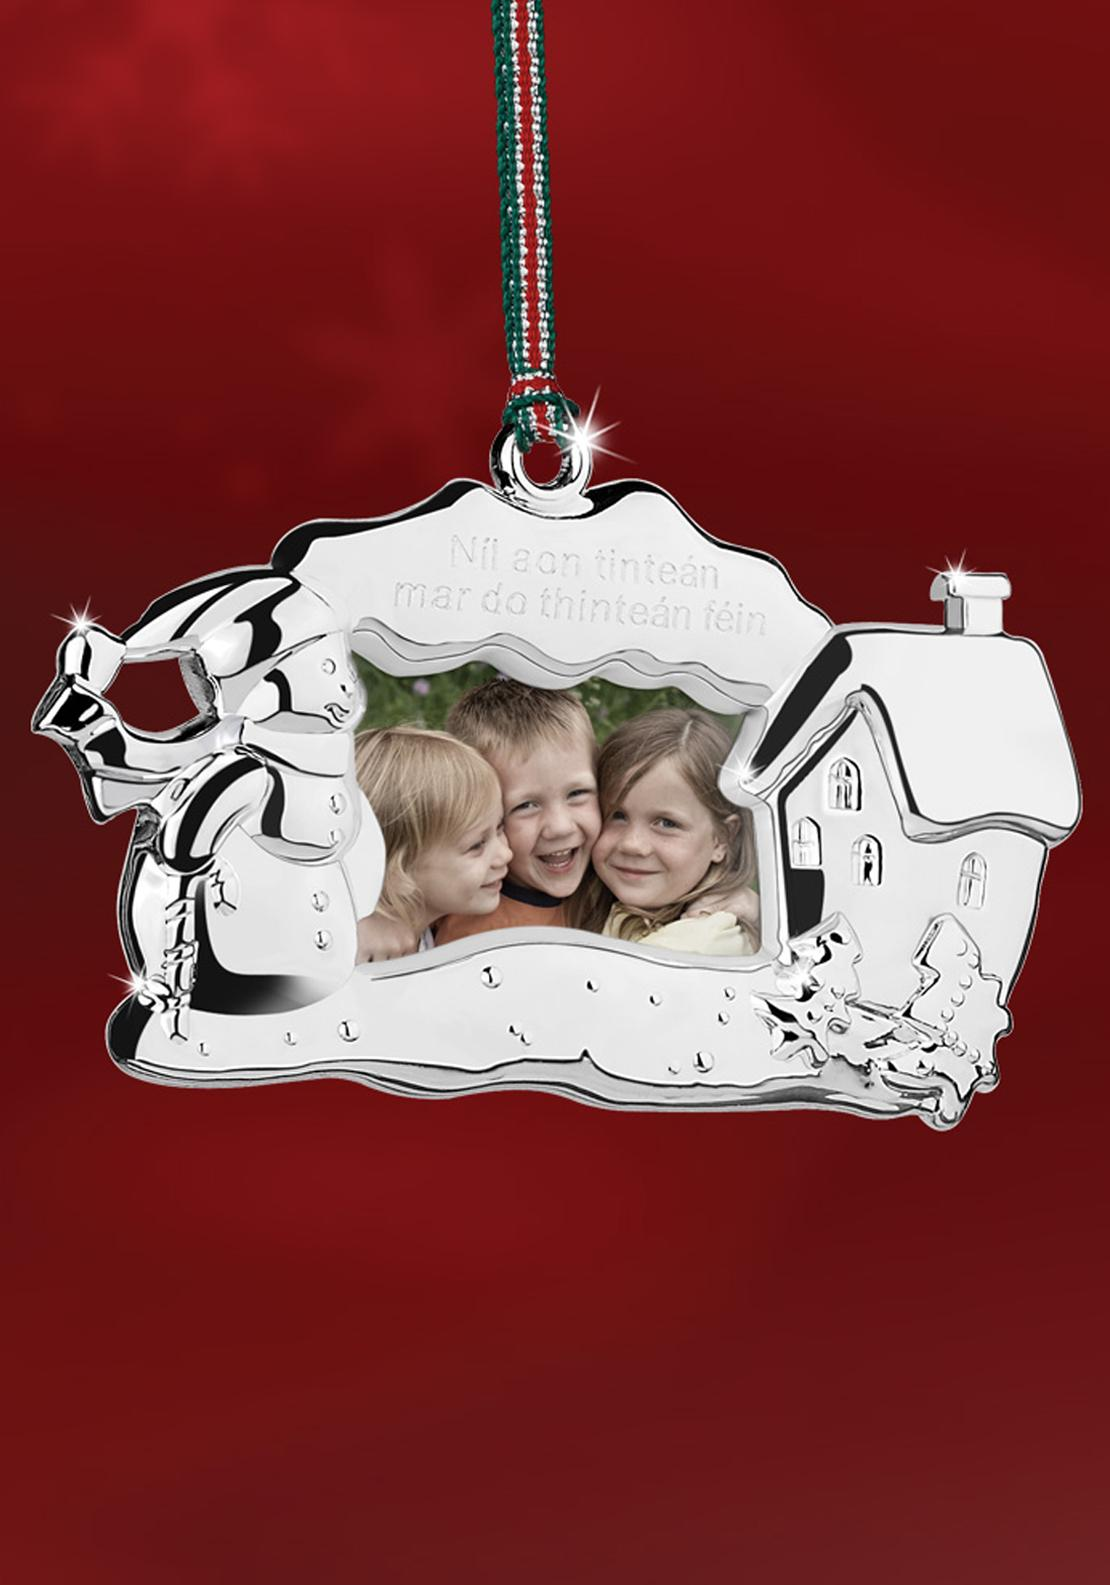 Newbridge Christmas Snowman Photo Frame Hanging Decoration